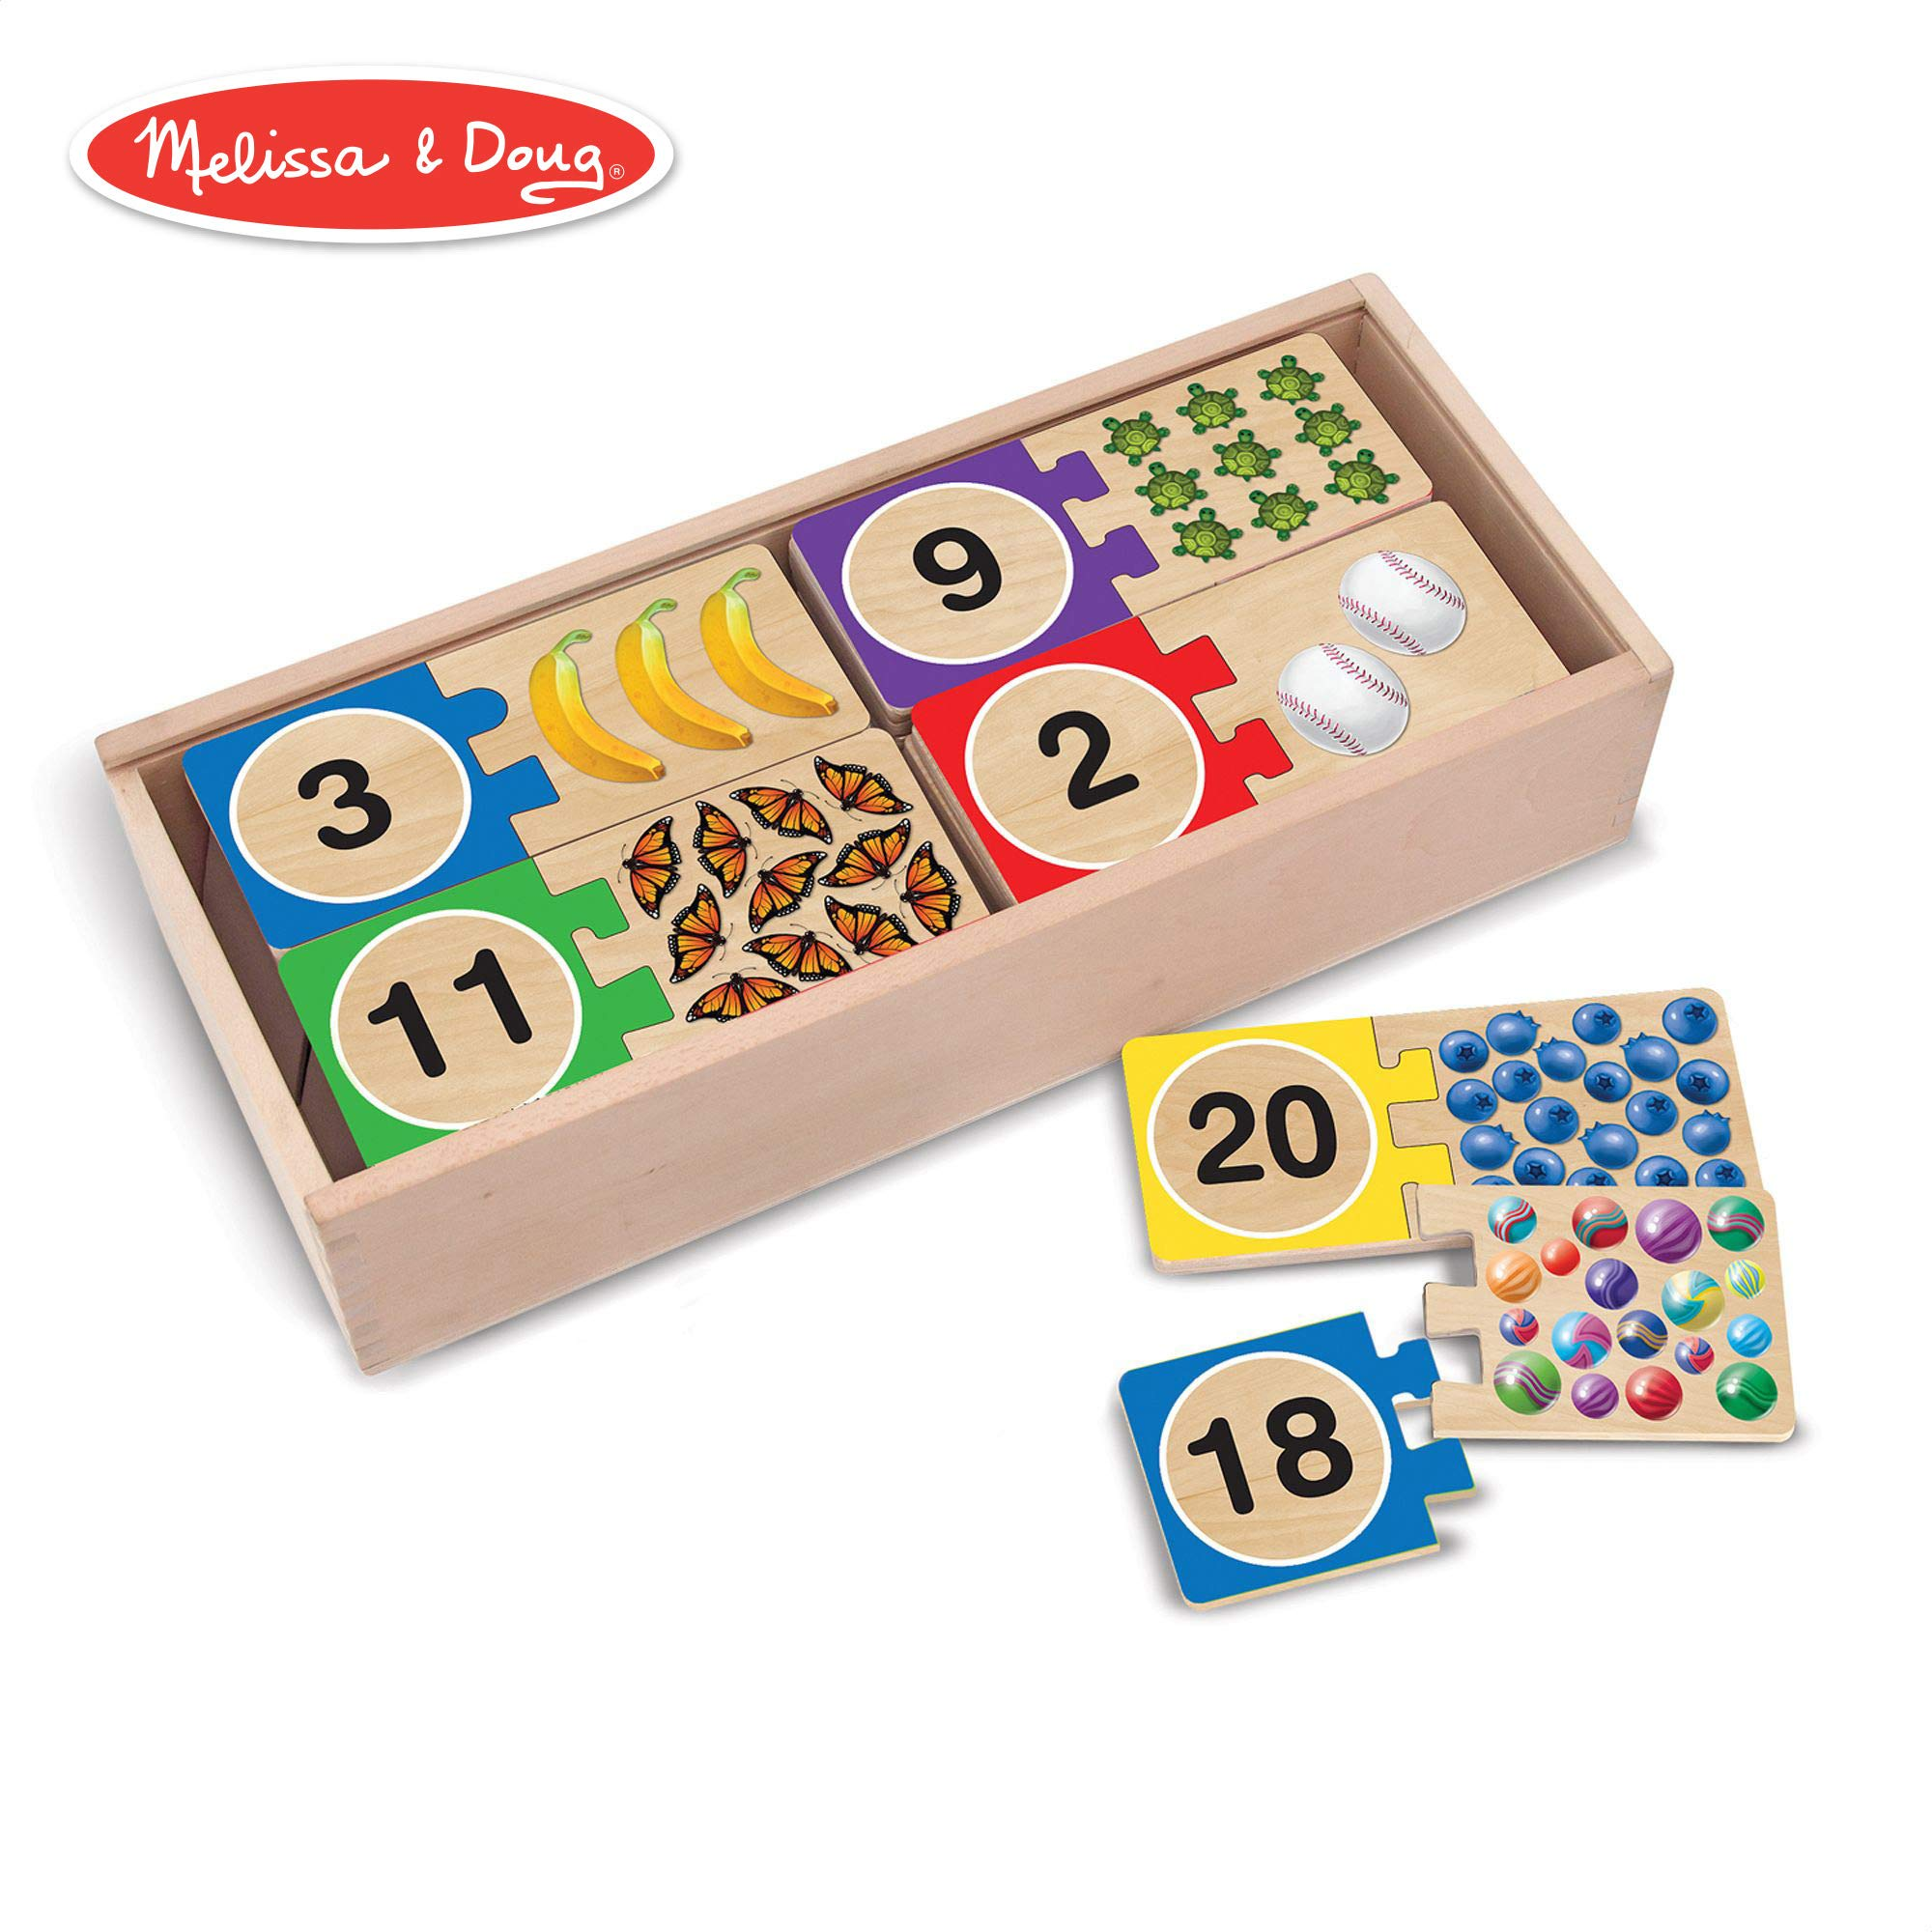 Melissa & Doug Self-Correcting Number Puzzles, Developmental Toys, Wooden Storage Box, Matching & Counting Skill Development, 40 Pieces, 12.75'' H x 5.75'' W x 2.75'' L by Melissa & Doug